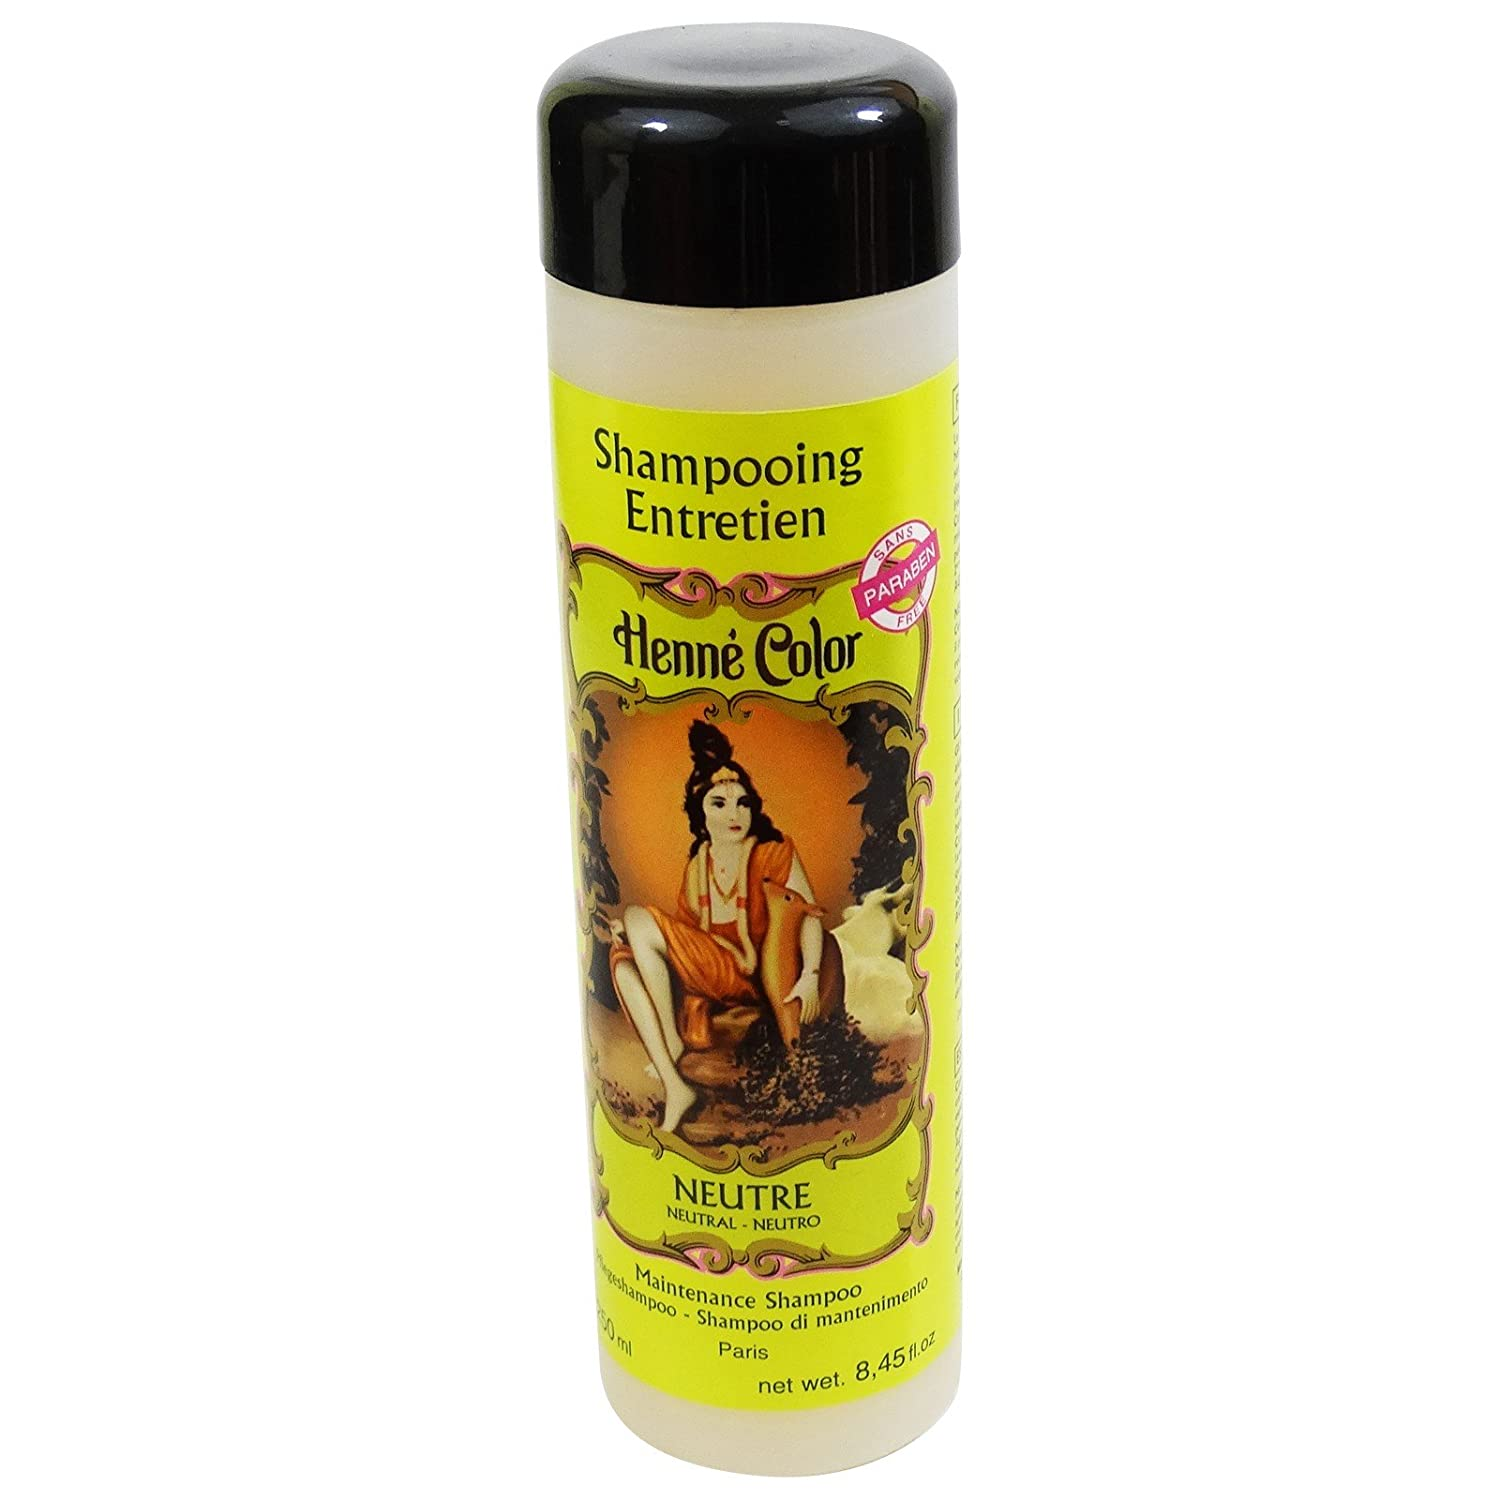 SITARAMA Henné Color - Henna Maintenance Shampoo - NEUTRAL - For frequent use and specially adapted to coloured hair